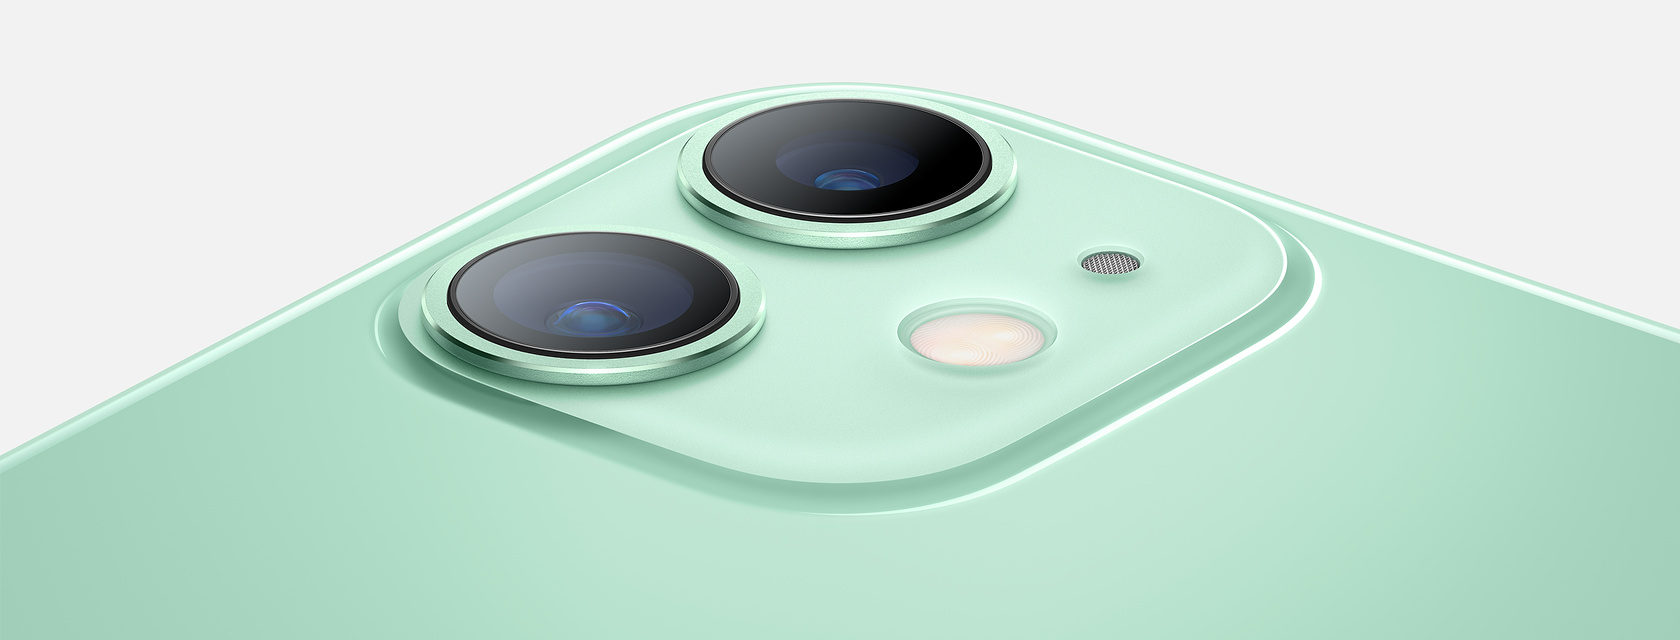 iPhone 11, iPhone SE 2 Popularity May Surge as Apple Asks Suppliers to Increase Production by 10%